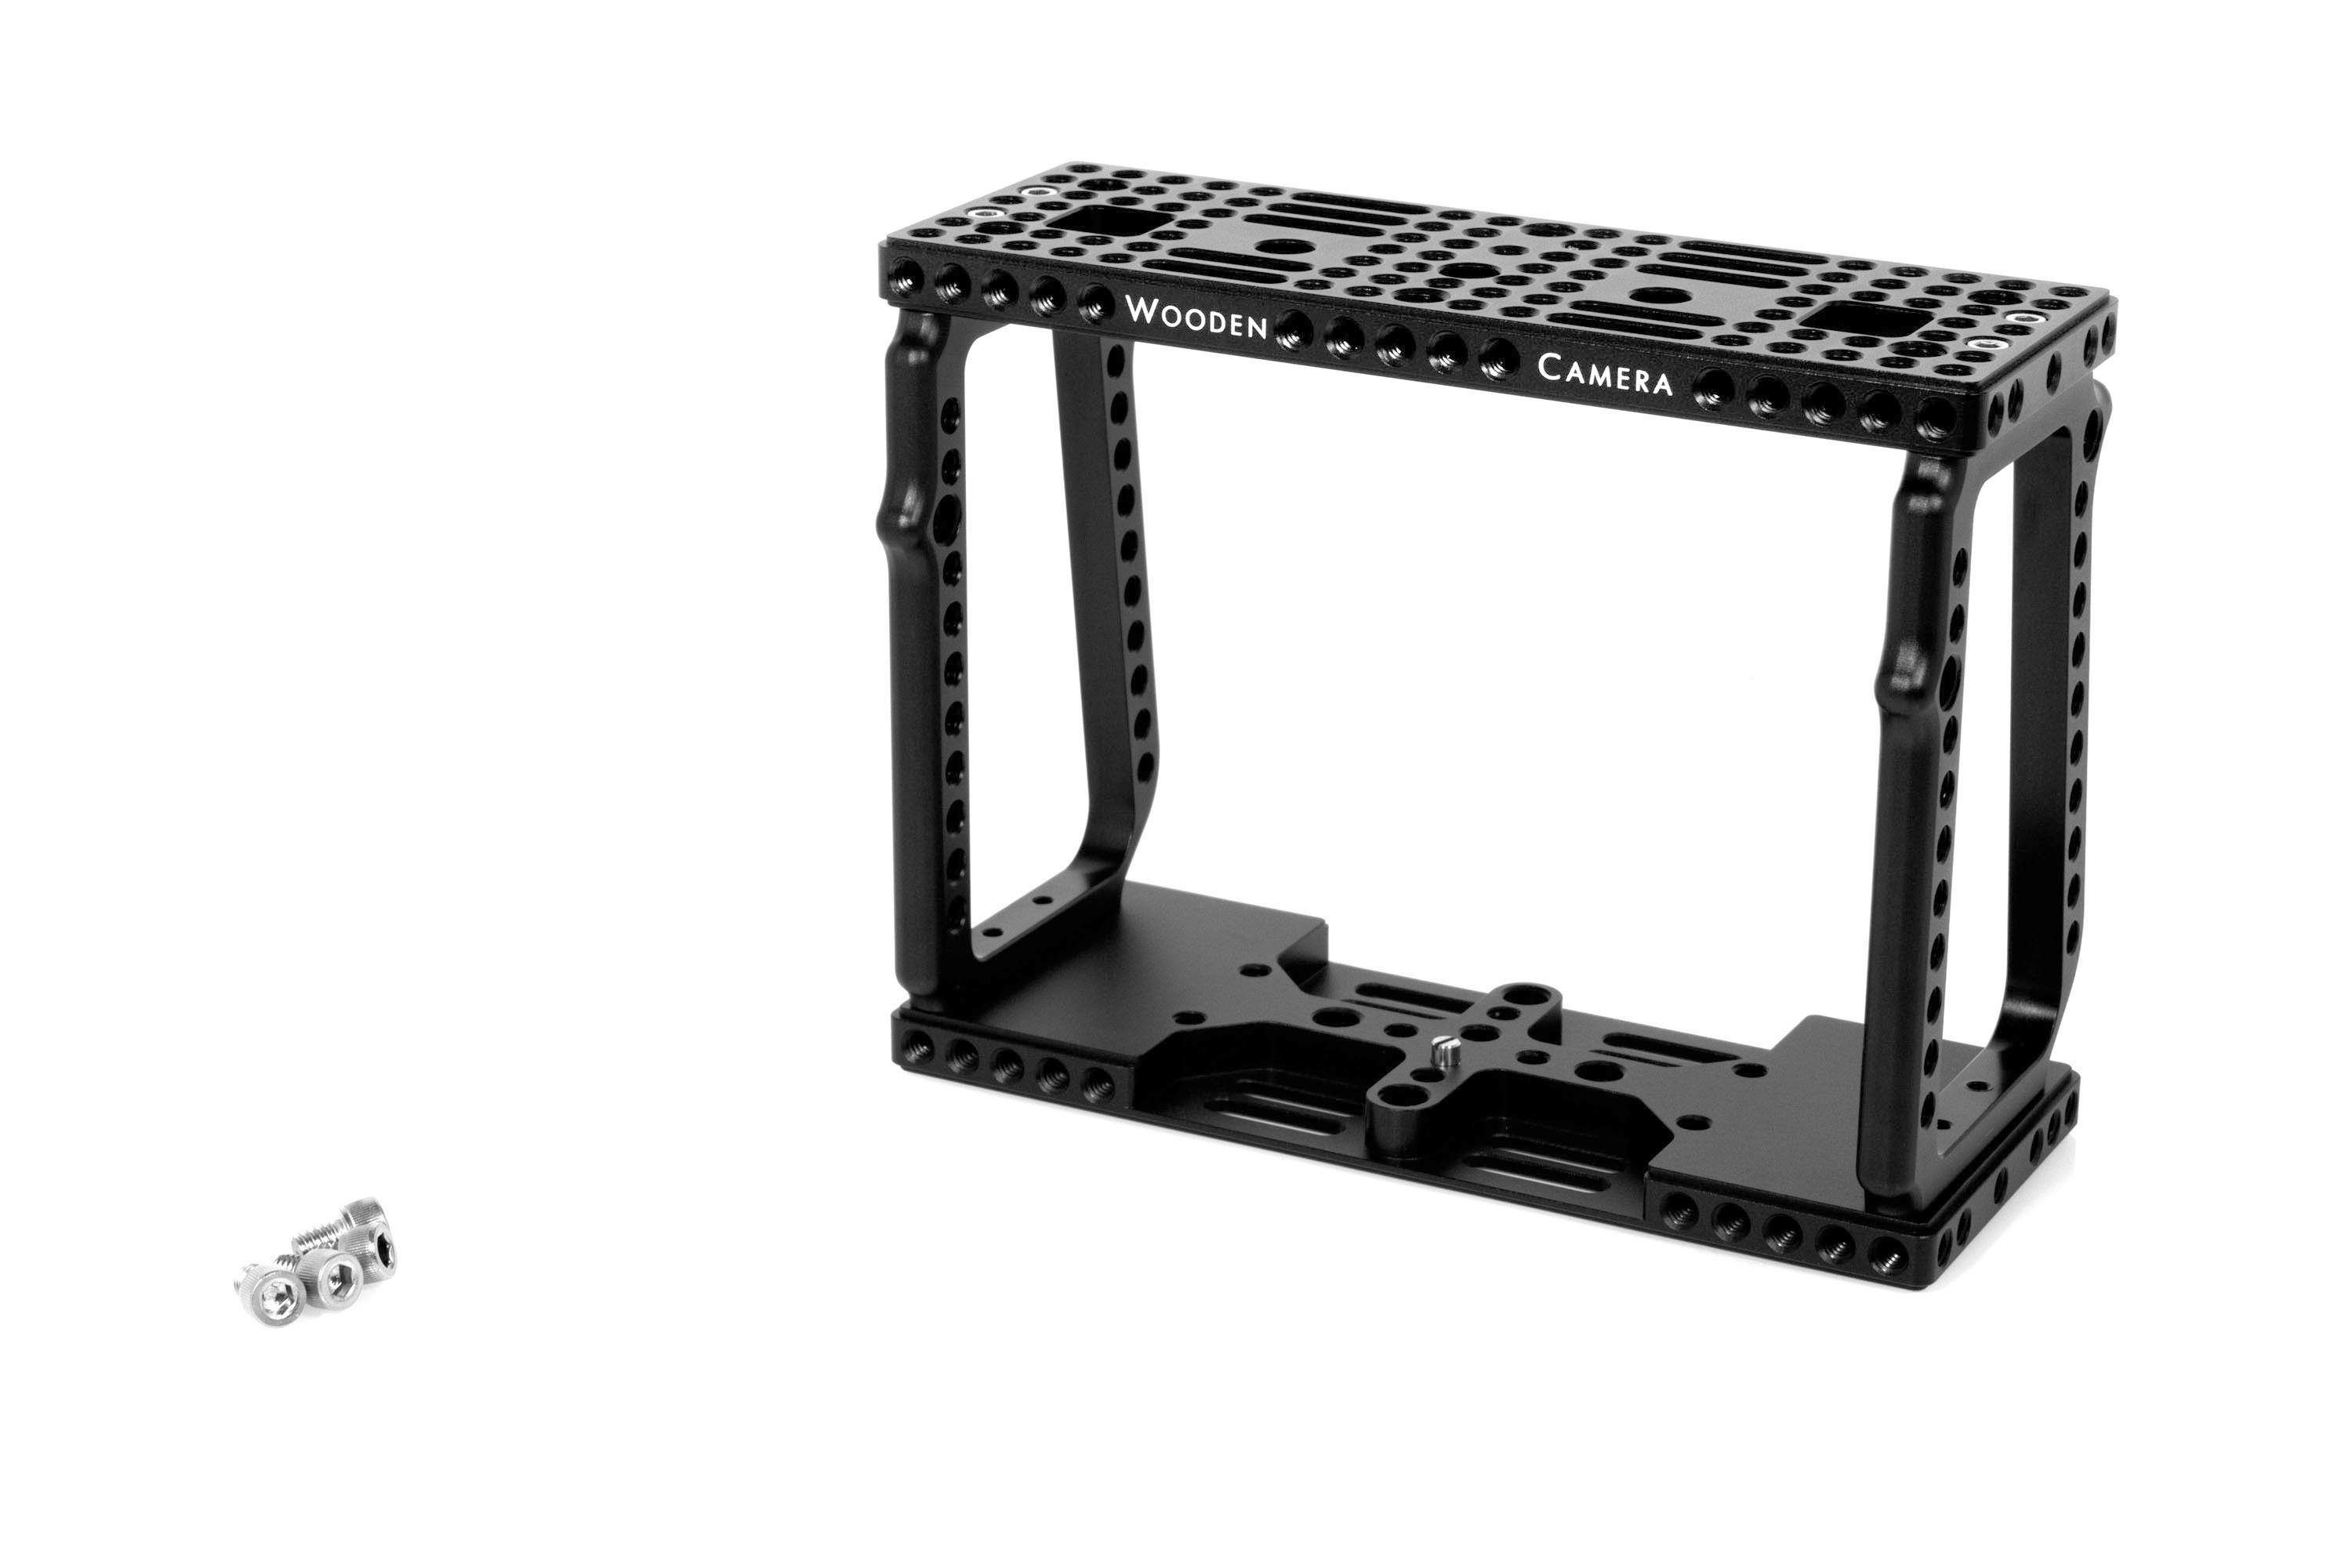 Wooden Camera Camera Cage (BMC) for Blackmagic Design's Cinema Camera CAMERA-CAGE-BMC